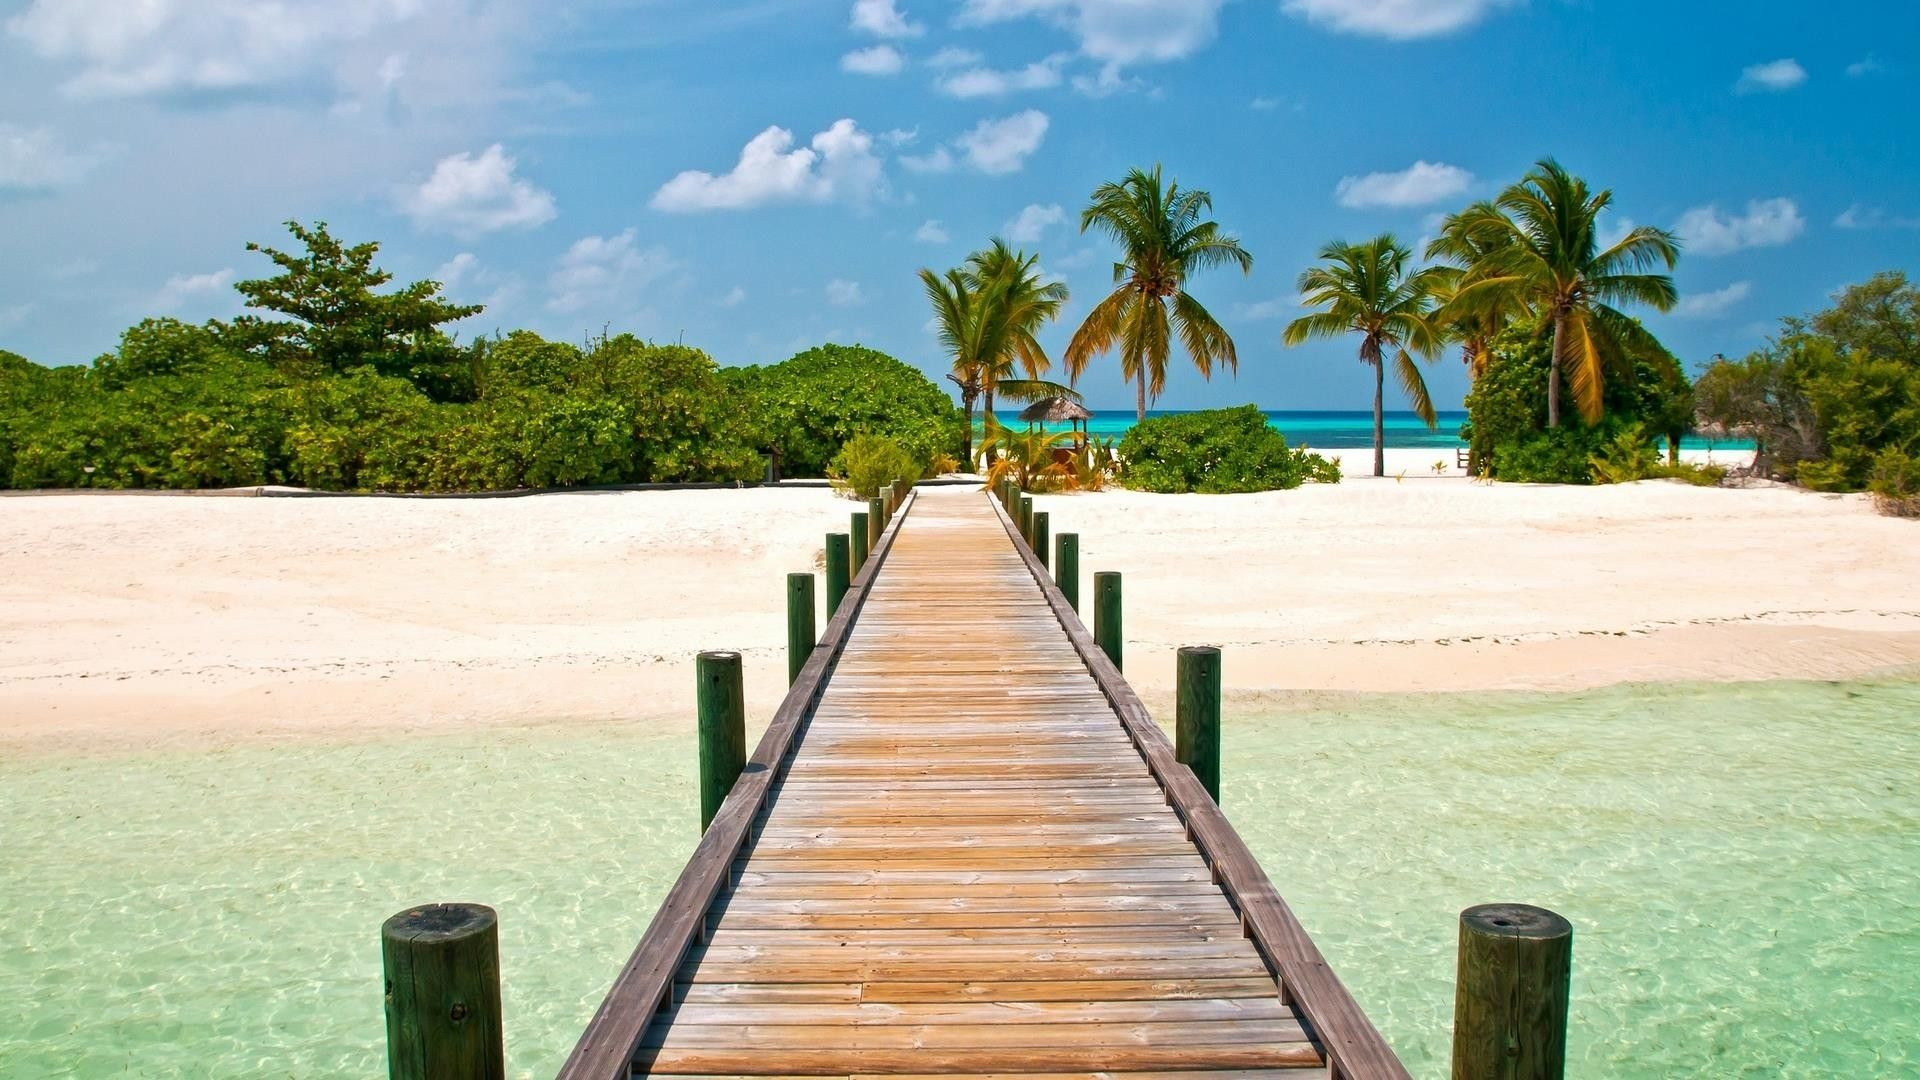 Paradise, Island, Beach Dock, Clear Water 1920x1080 (1080p) - Wallpaper - ImgPrix